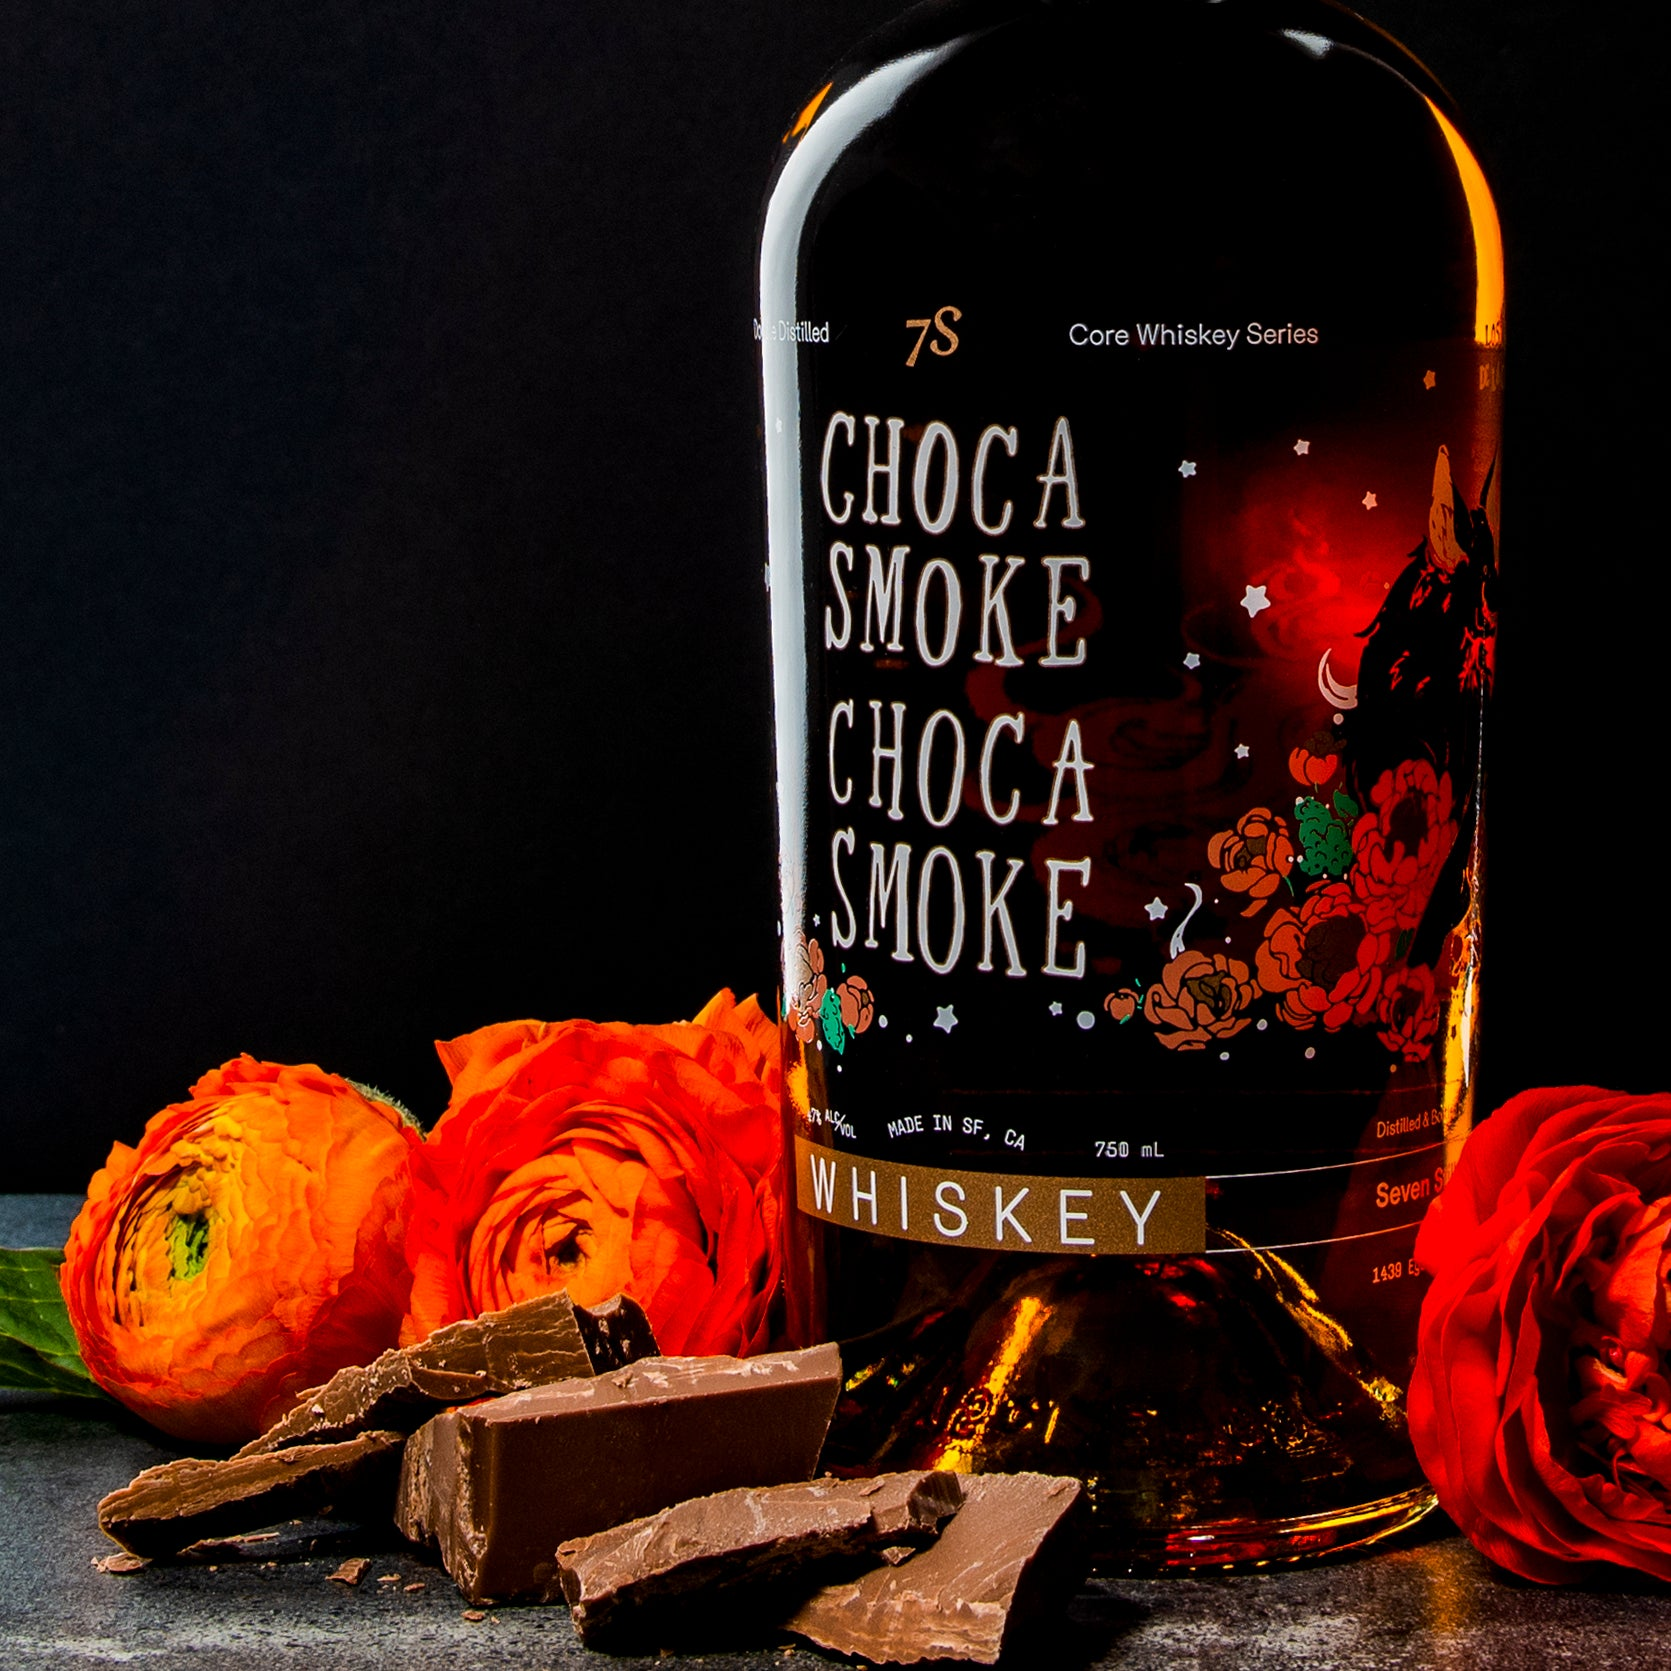 Chocasmoke | 750ml - Chocolate Oatmeal Stout - Seven Stills Brewery & Distillery